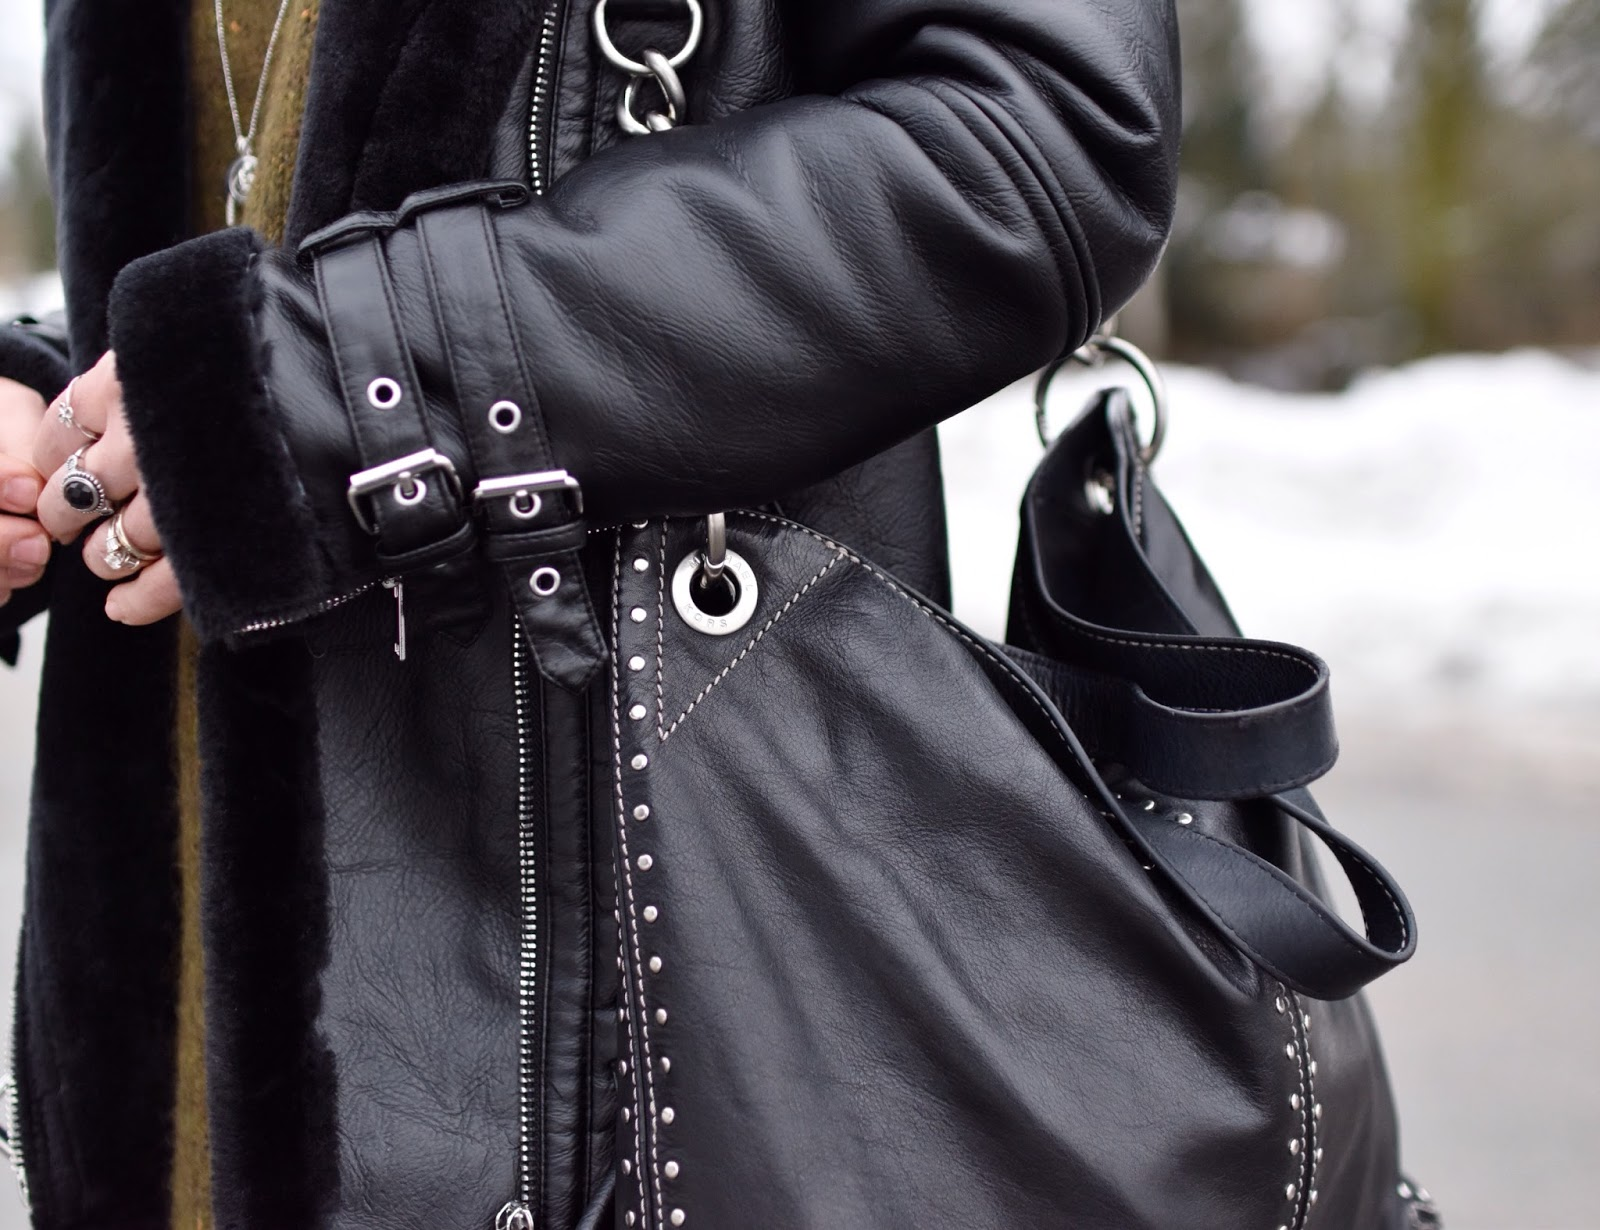 Monika Faulkner outfit inspiration - black aviator jacket, MK stud-embellished bag